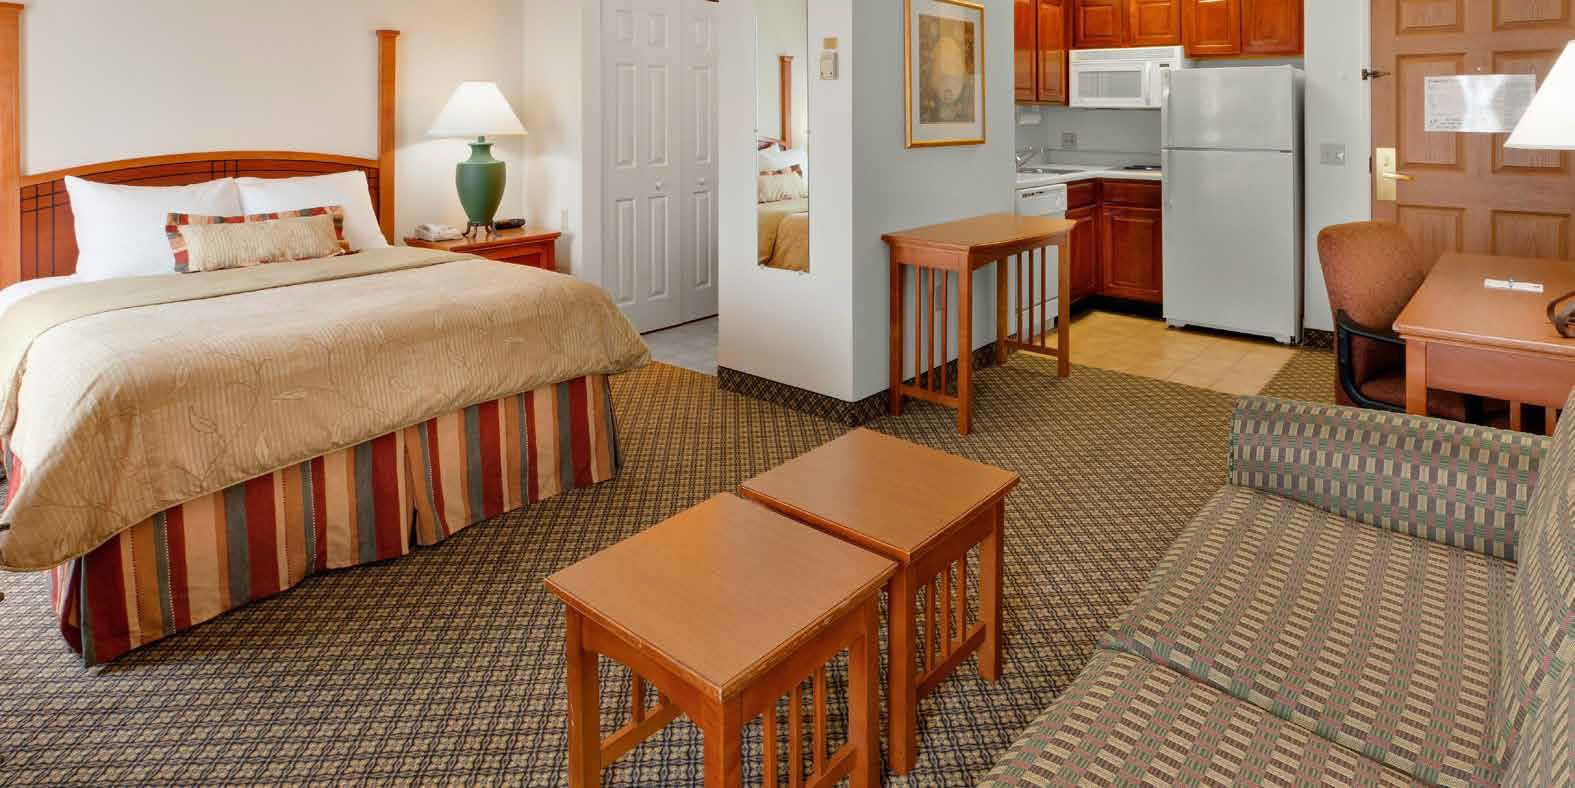 New In Allentown Pa And Craving For Comforts Of Home Book Your Stay At Ihg Intercontinental Hotels Group And Experience A New Lev Hotel Lounge Areas Suites